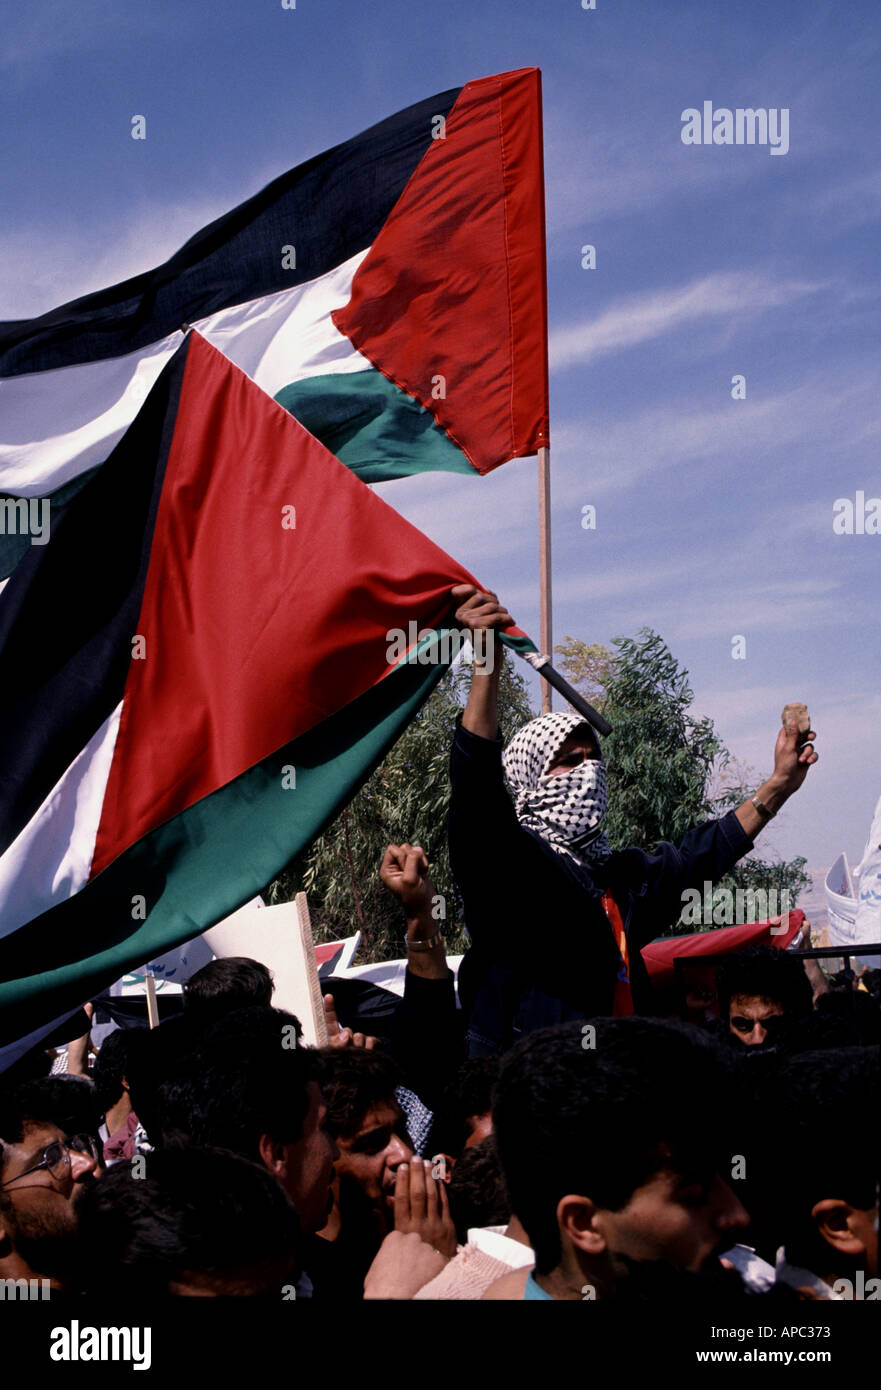 Palestinian demonstrator holding Palestinian flag and rock during demonstration in Jordan Valley Jordan - Stock Image